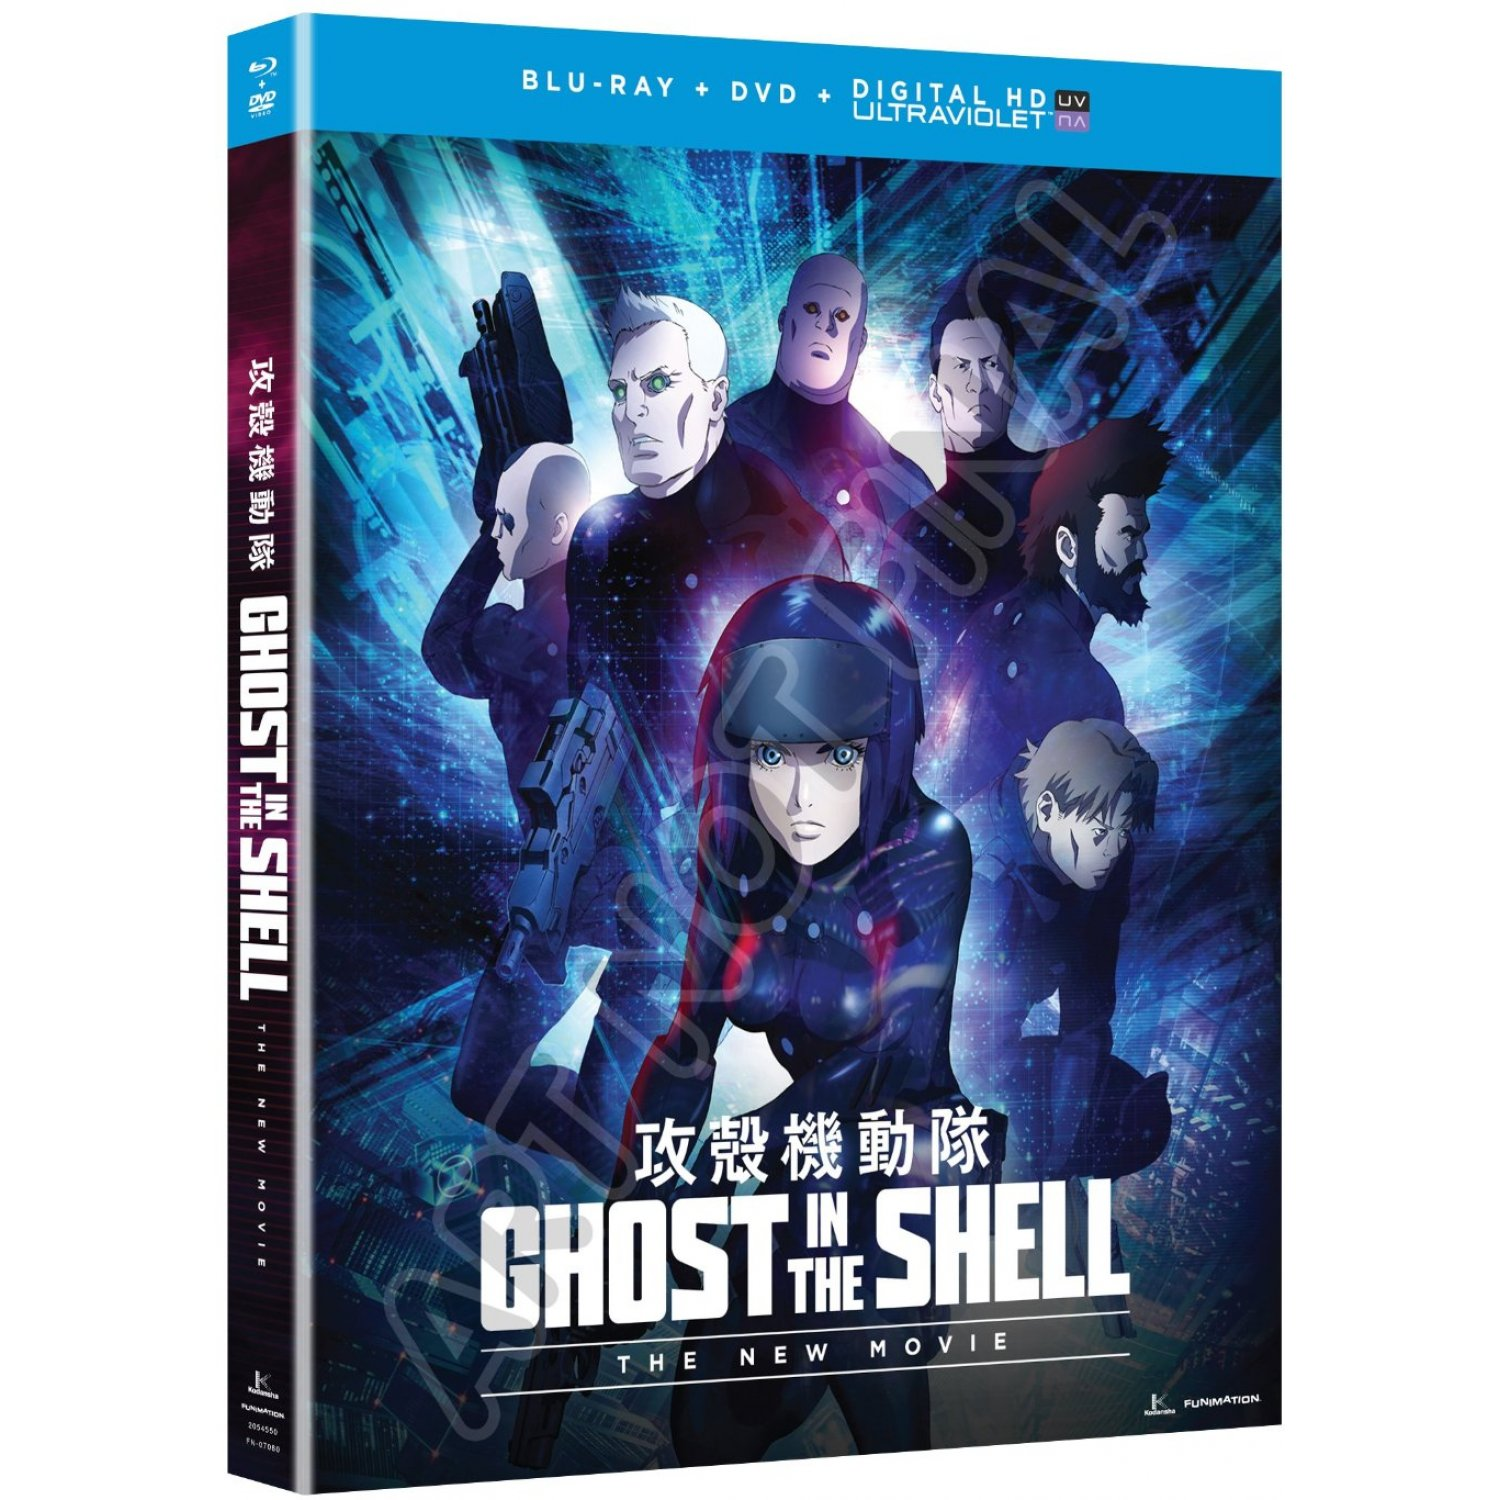 Ghost In The Shell The New Movie Blu Ray Dvd Ultraviolet